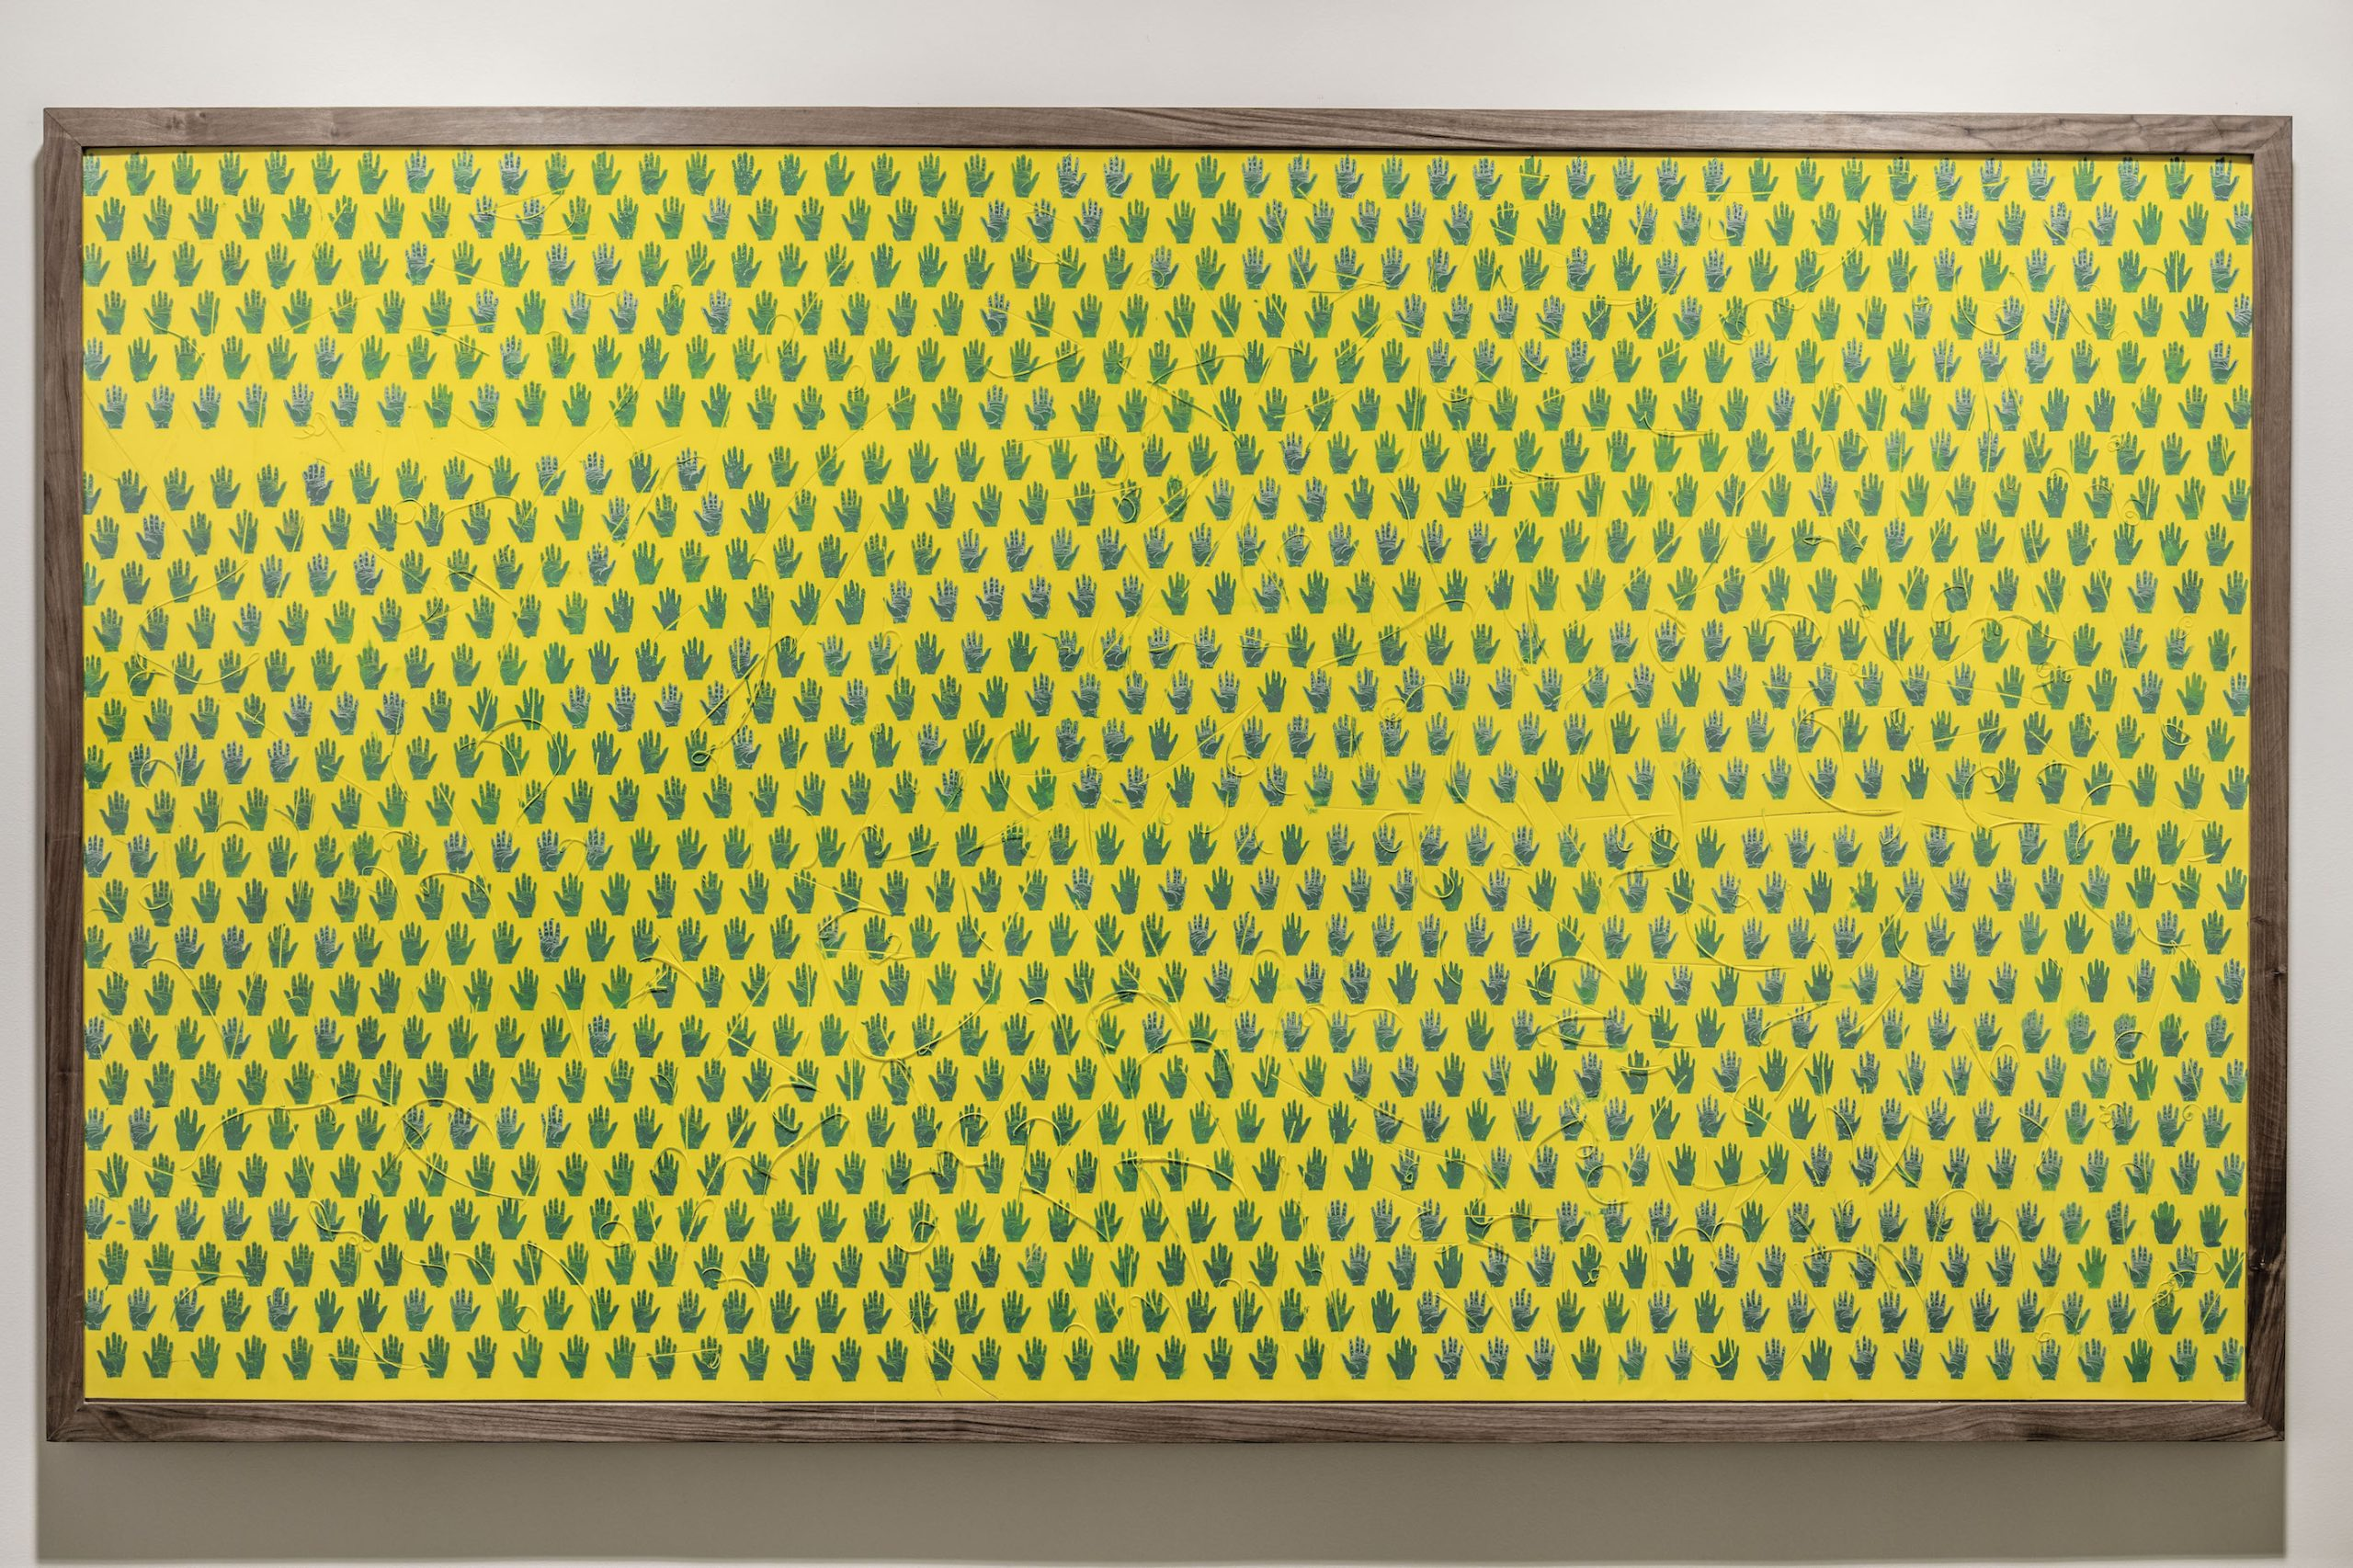 Moroccan pattern #3, 2018, Acrylic on rubber, 115.5 x 200 cm